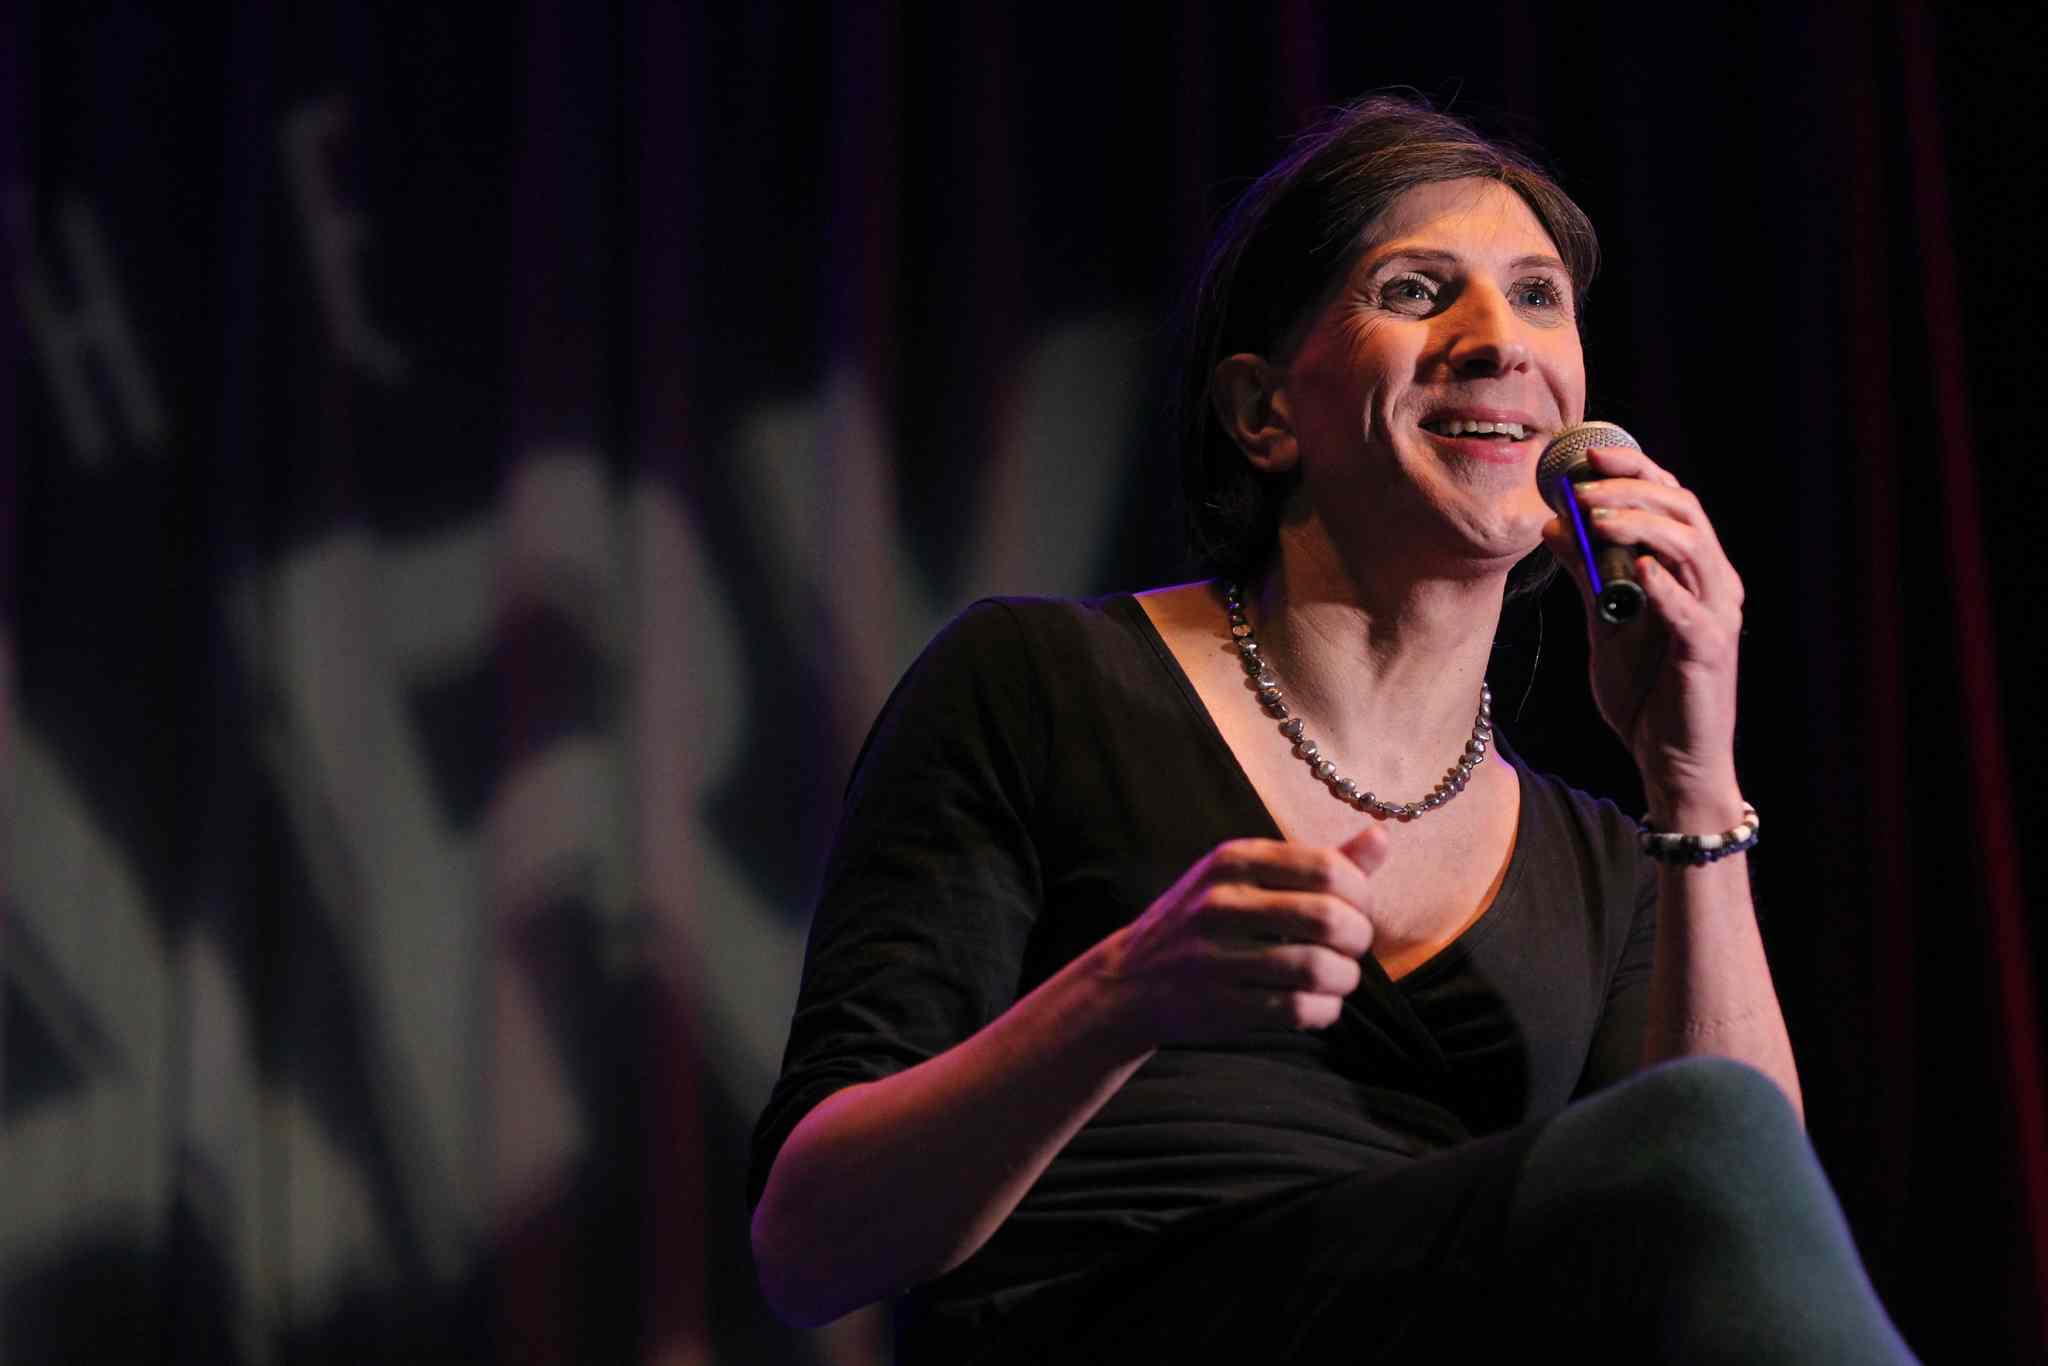 Comedian Lara Rae will perform at the all-female Empow(HER)ment comedy show at the Park Theatre this weekend.